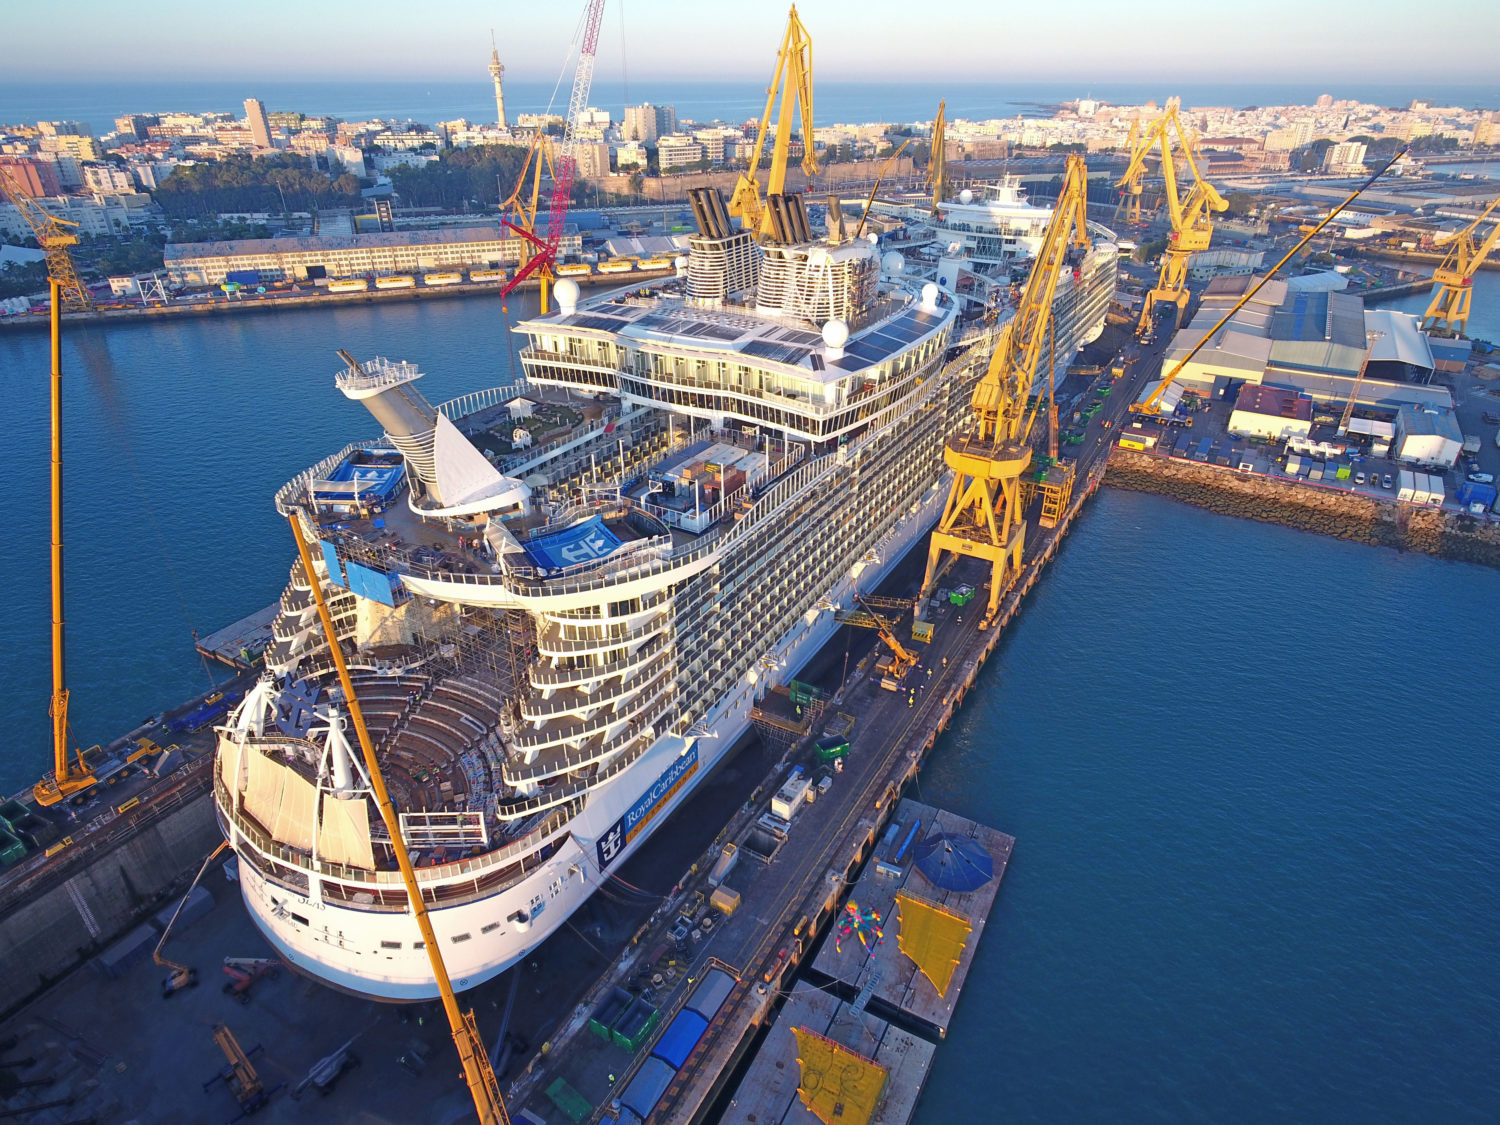 Photos Of Royal Caribbean S Oasis Of The Seas In Dry Dock